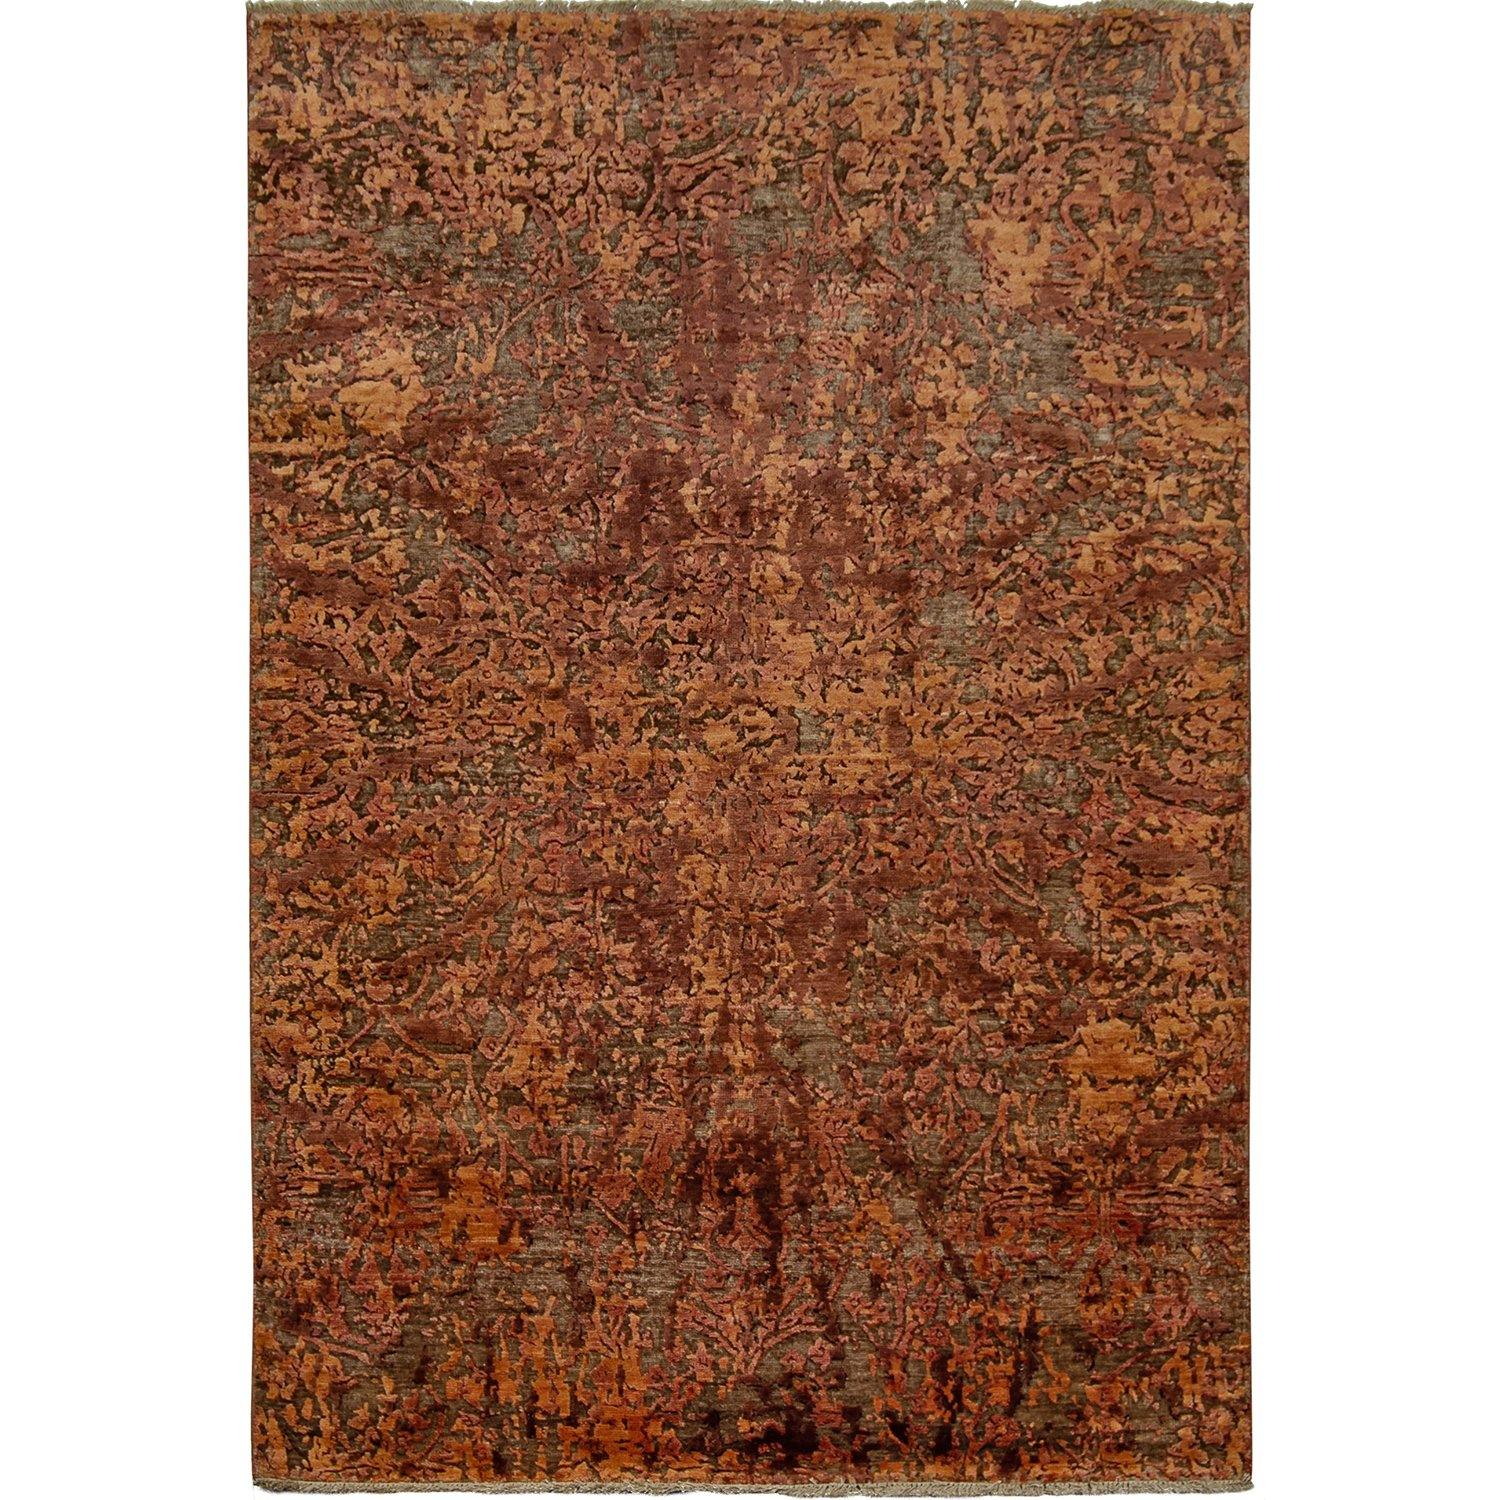 Damask Persian-Rug | House-of-Haghi | NewMarket | Auckland | NZ | Handmade Persian Rugs | Hand Knotted Persian Rugs